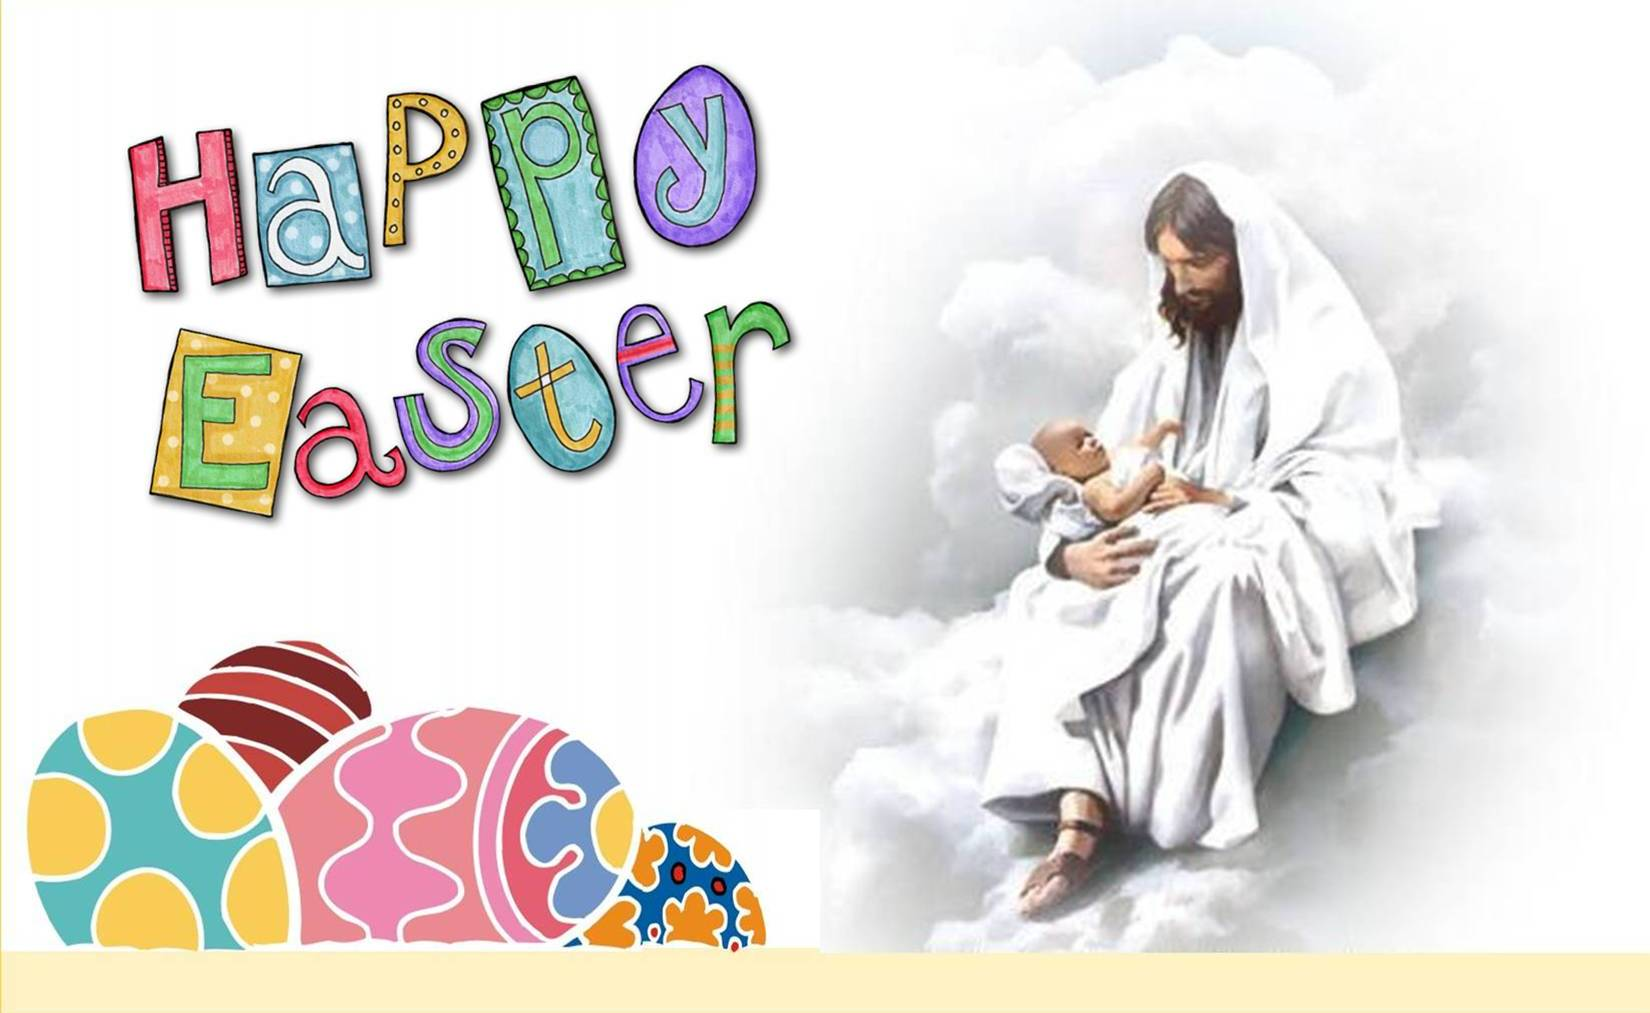 https://mrcstpaulsbayprimary.files.wordpress.com/2011/04/happy-easter2.jpg